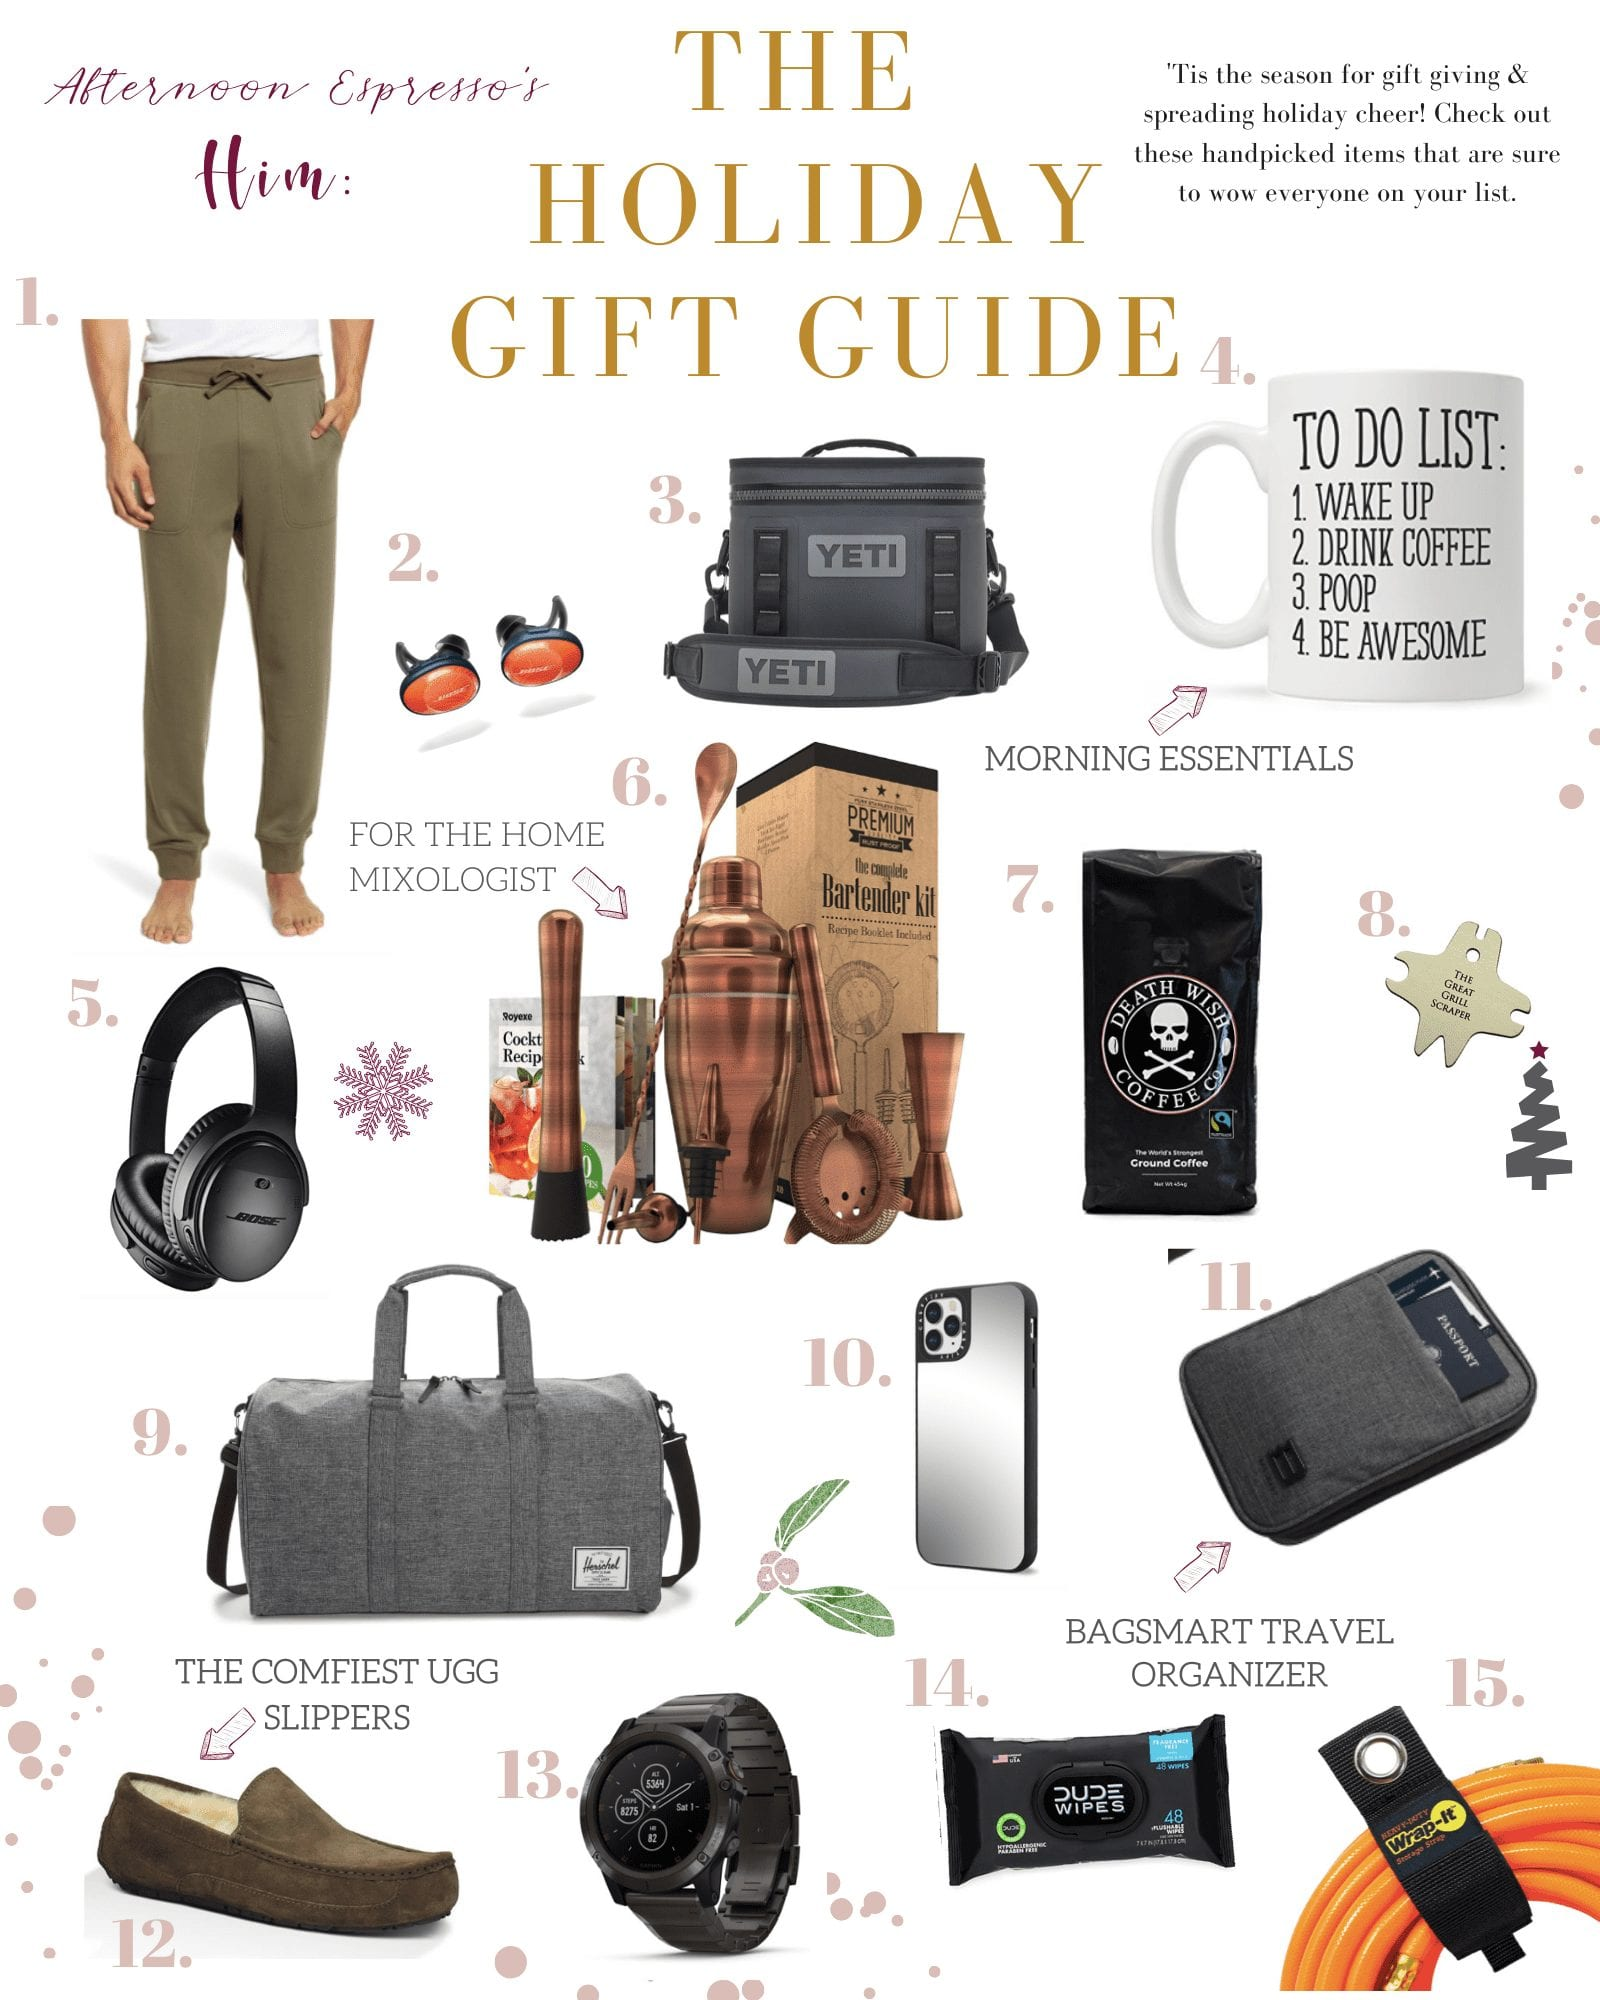 Holiday Gift Guide for Him - 2019 Gifting